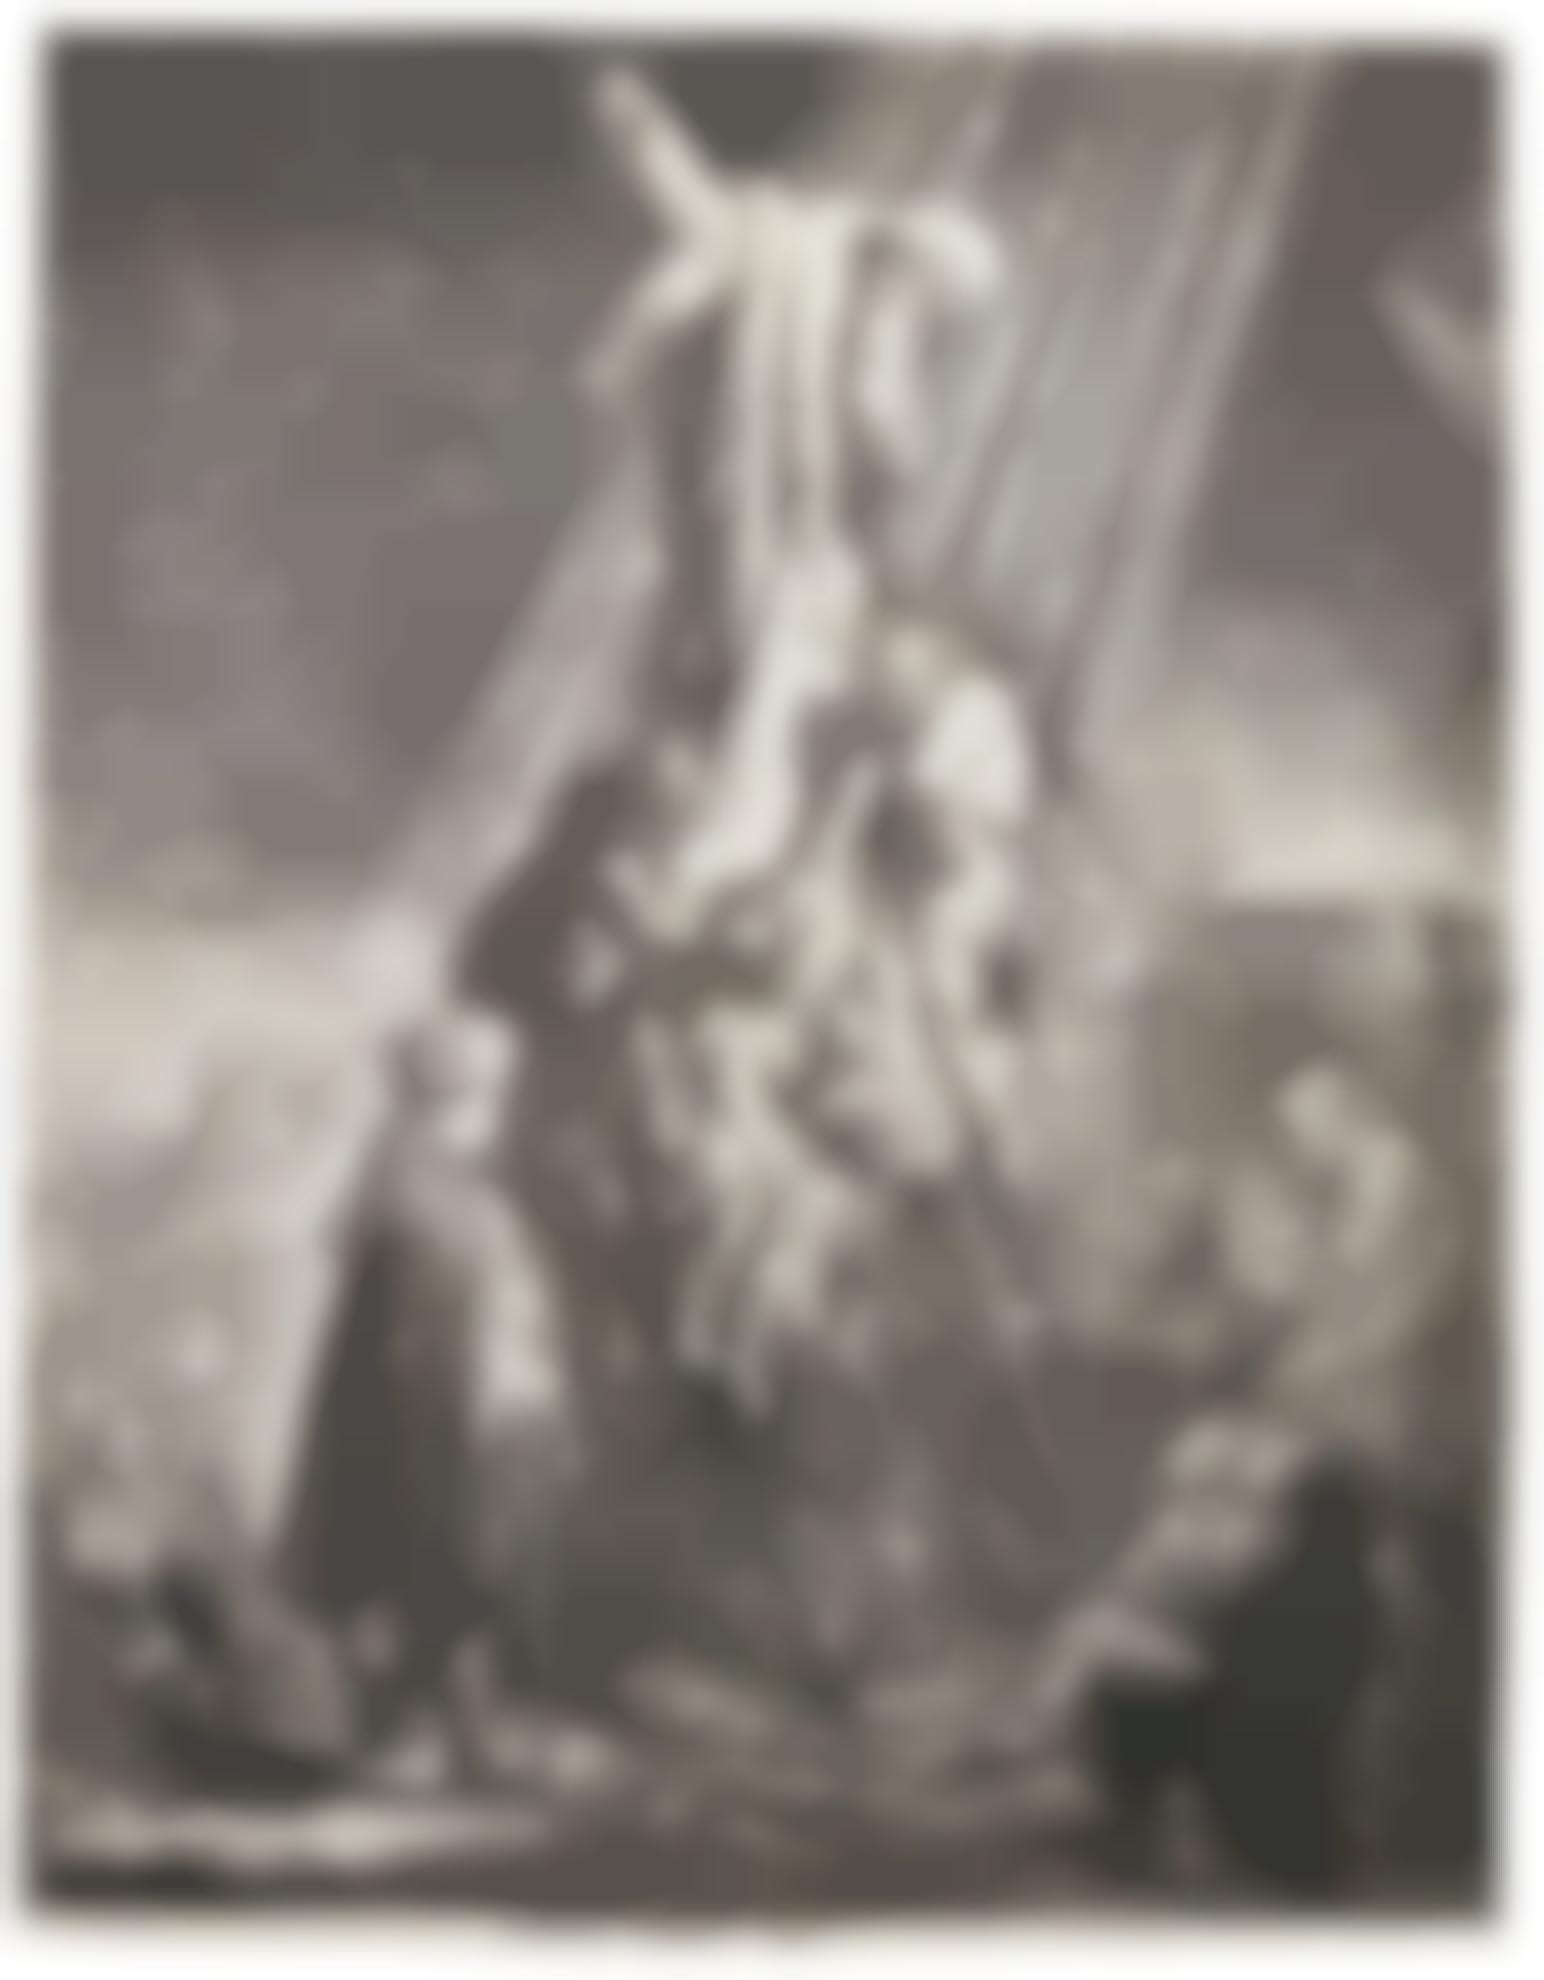 Rembrandt van Rijn-The Descent From The Cross: Second Plate (B., Holl. 81; New Holl. 119; H. 103)-1639